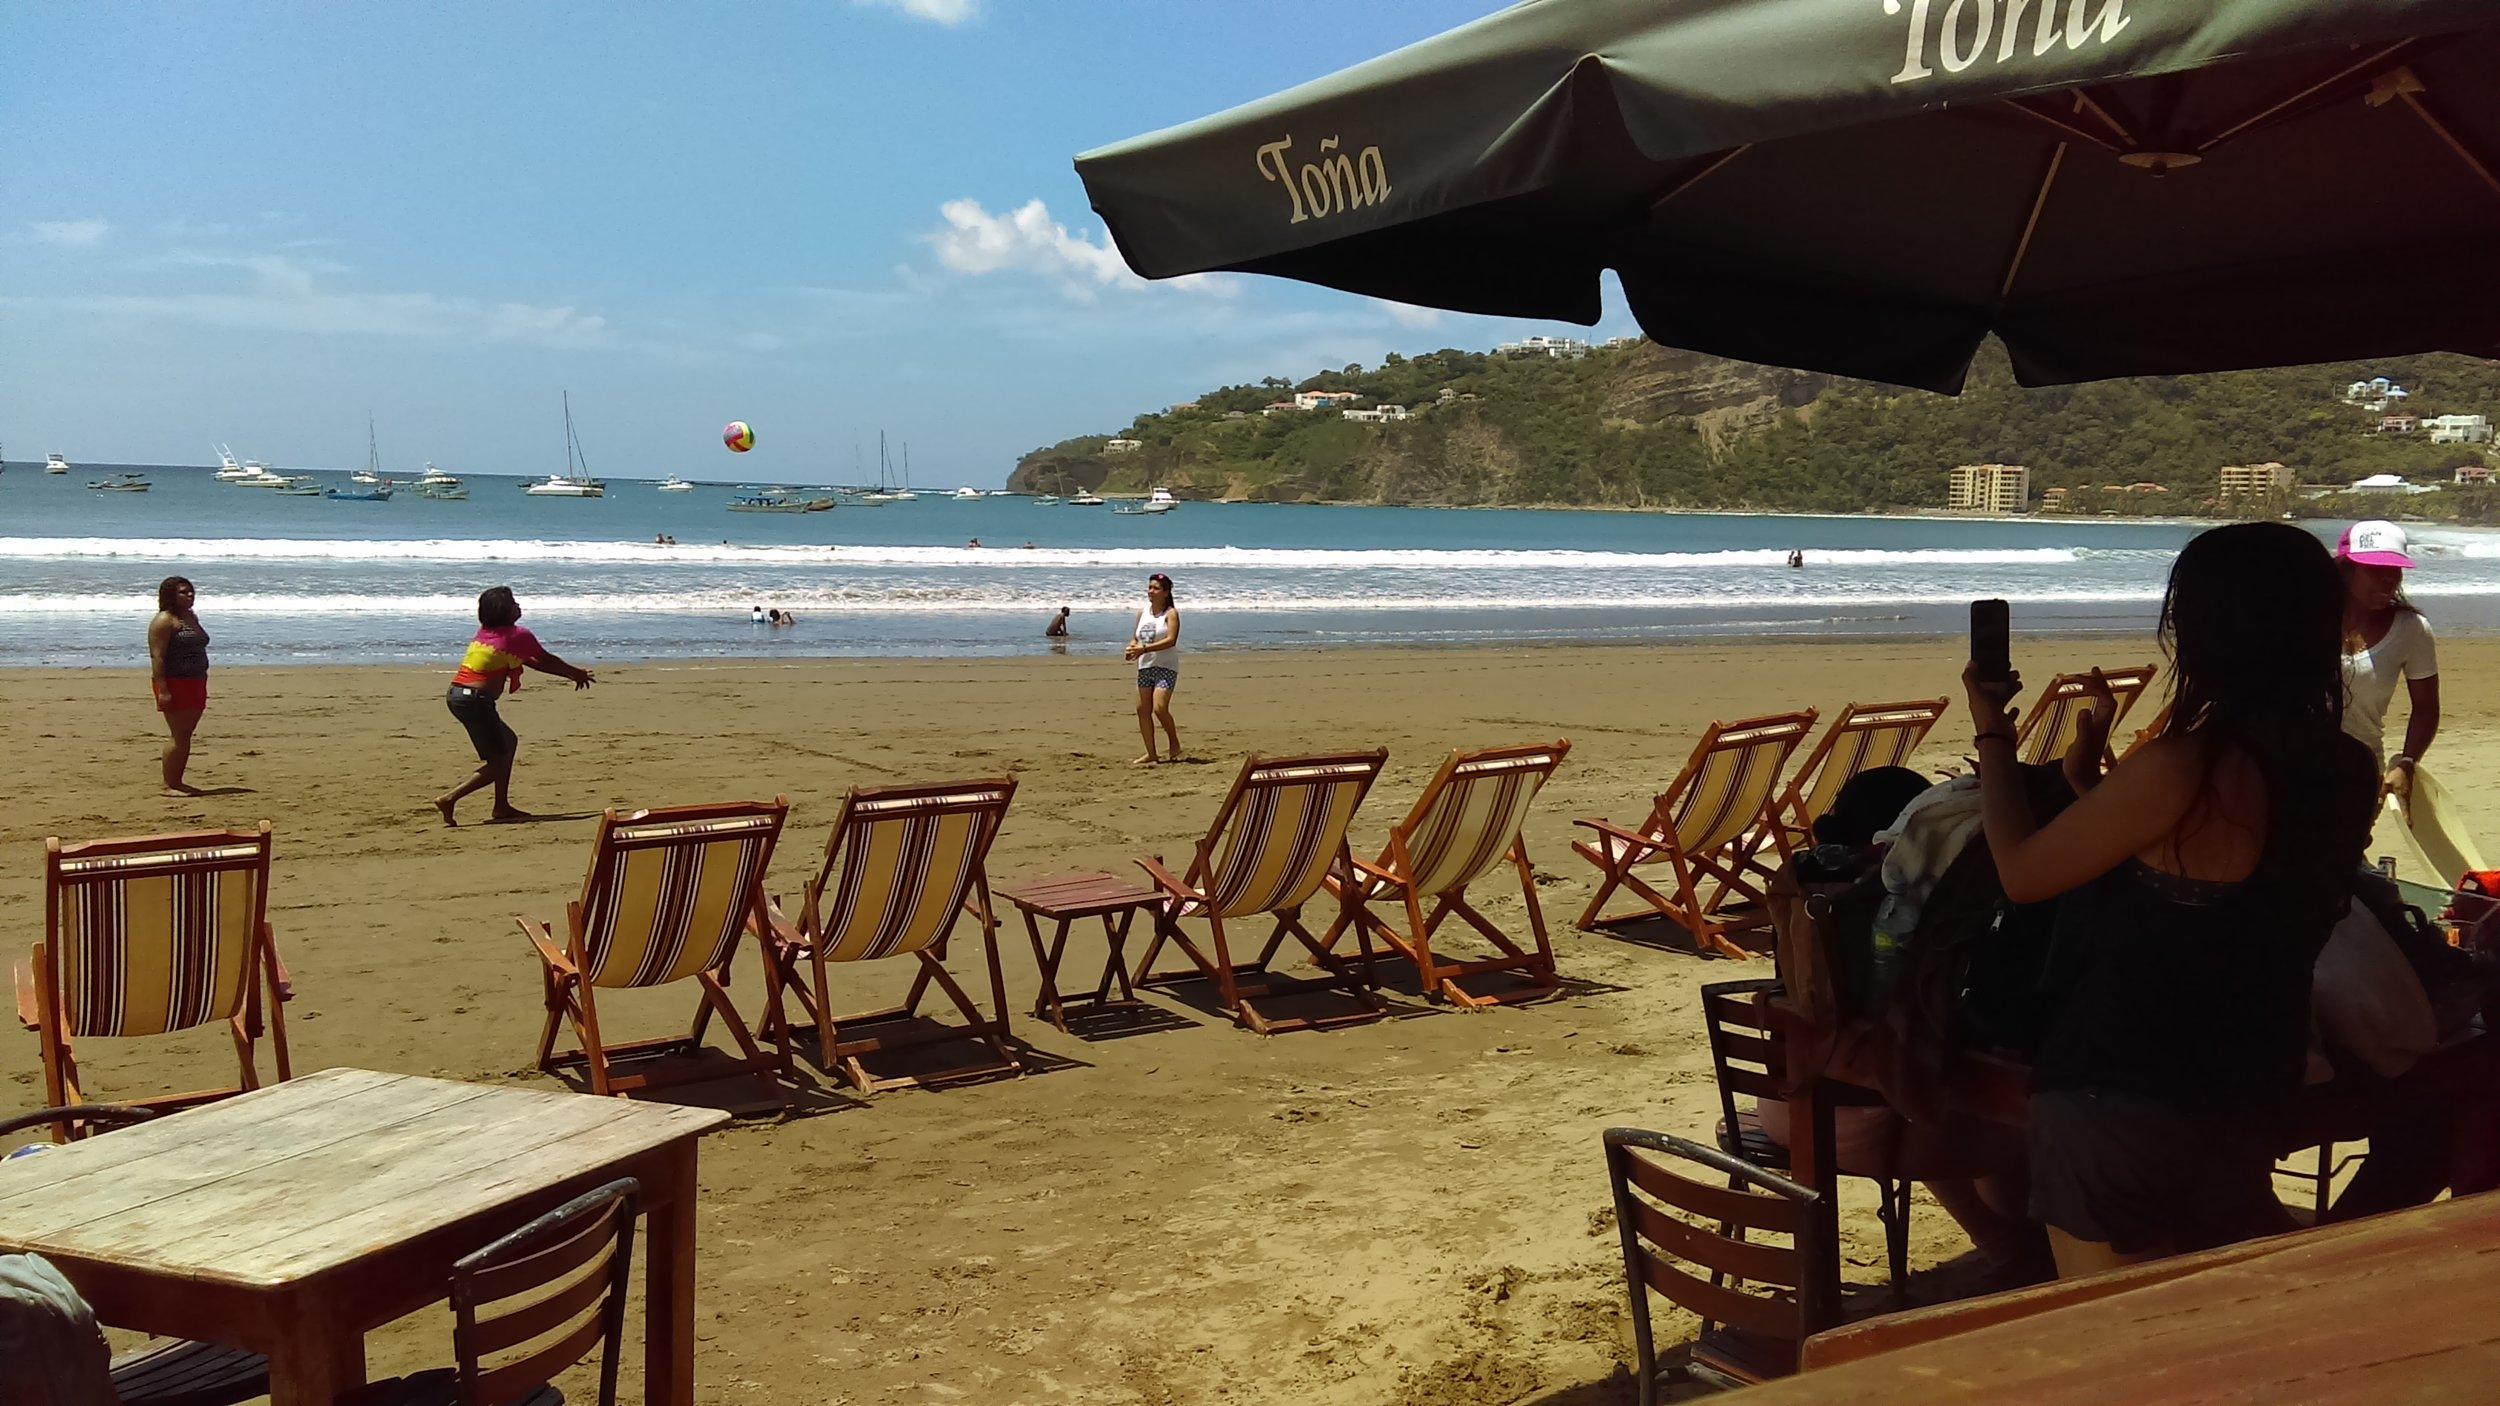 Beach time on the west coast in the famous surf town, San Juan del Sur. Looks fine to me!